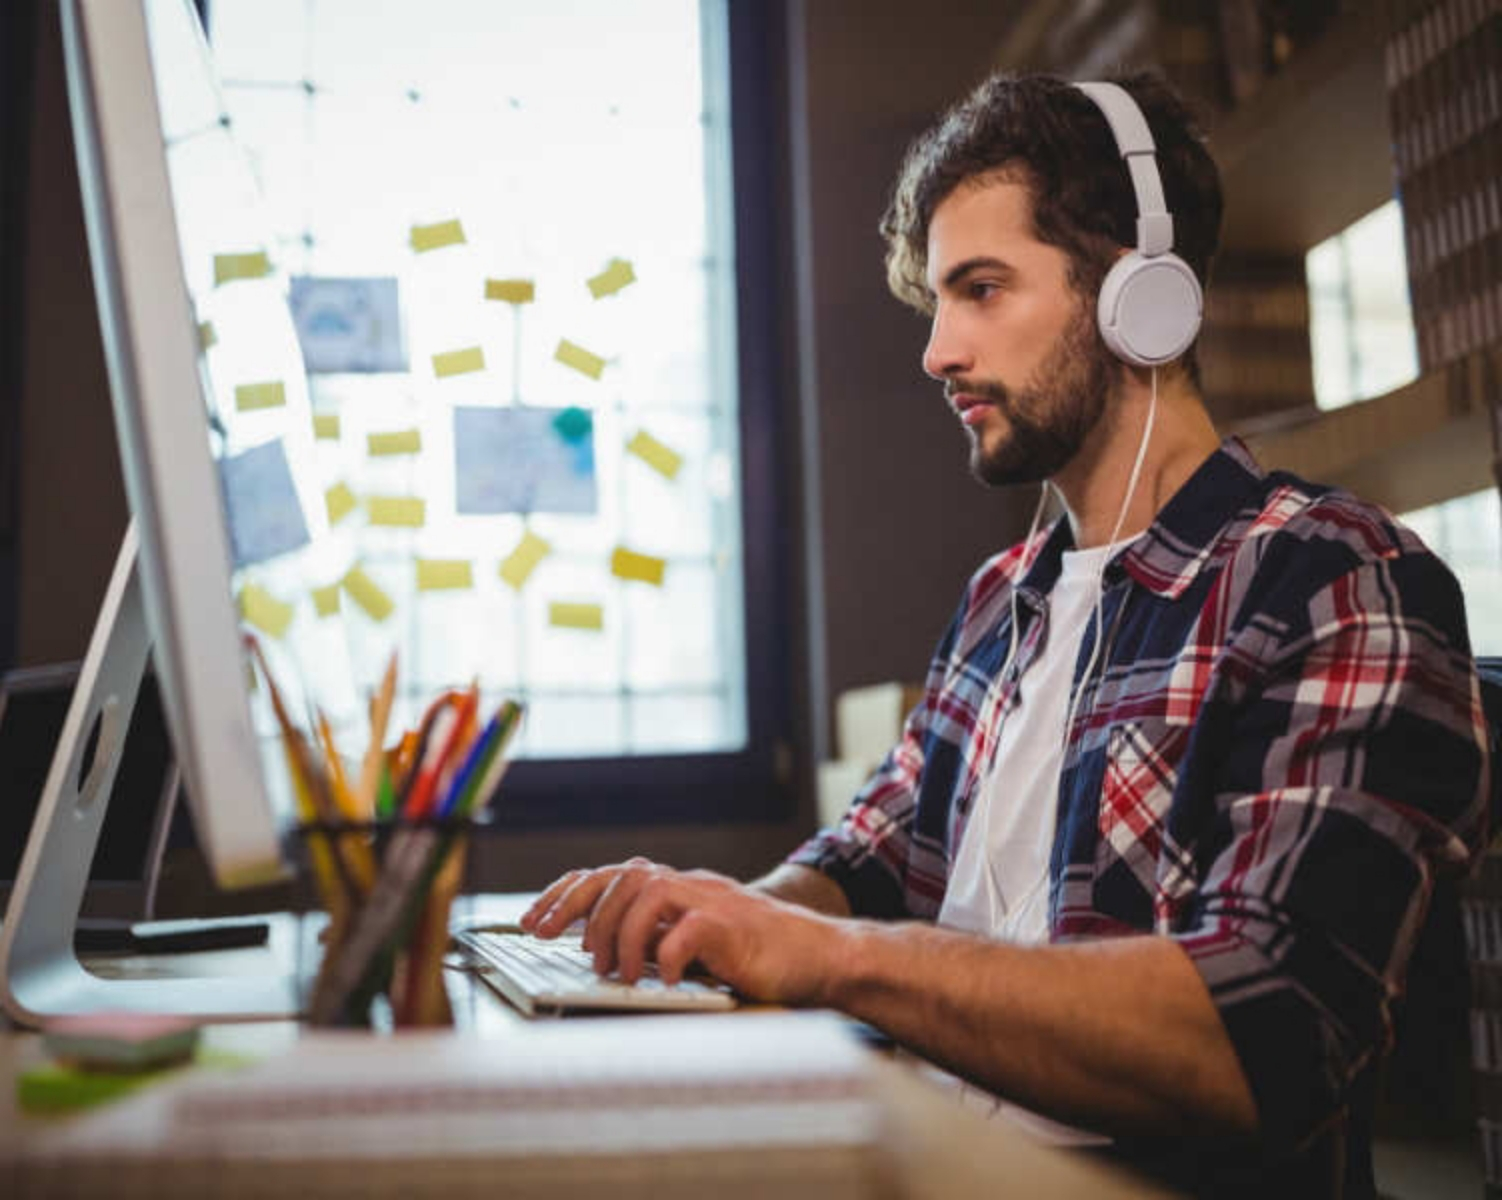 11) Listen to music while you work.